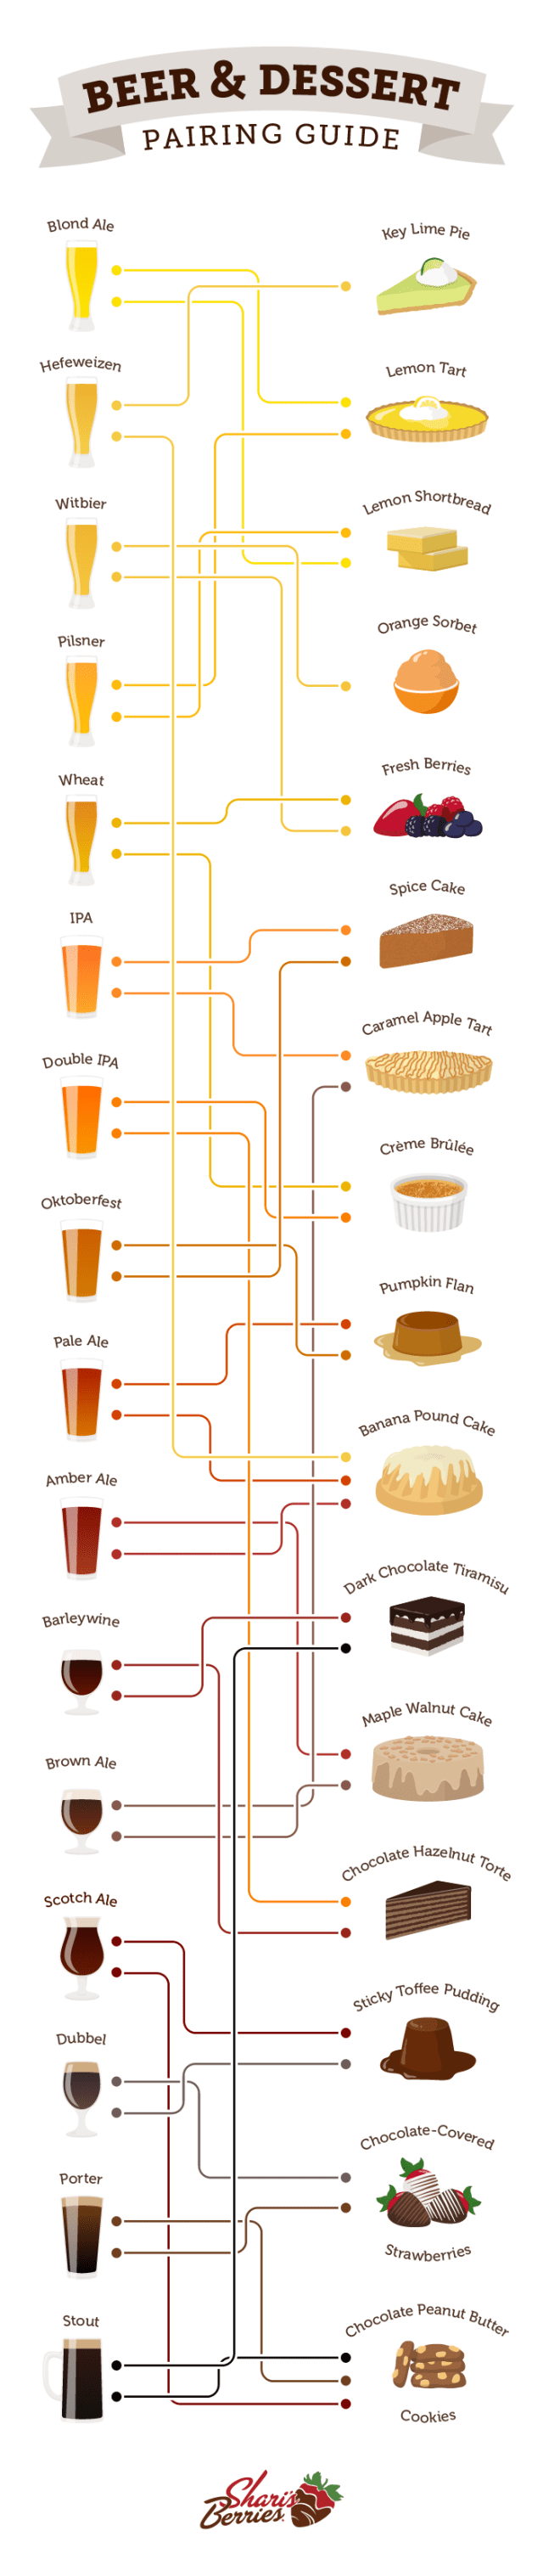 Beer and Dessert Pairing Guide